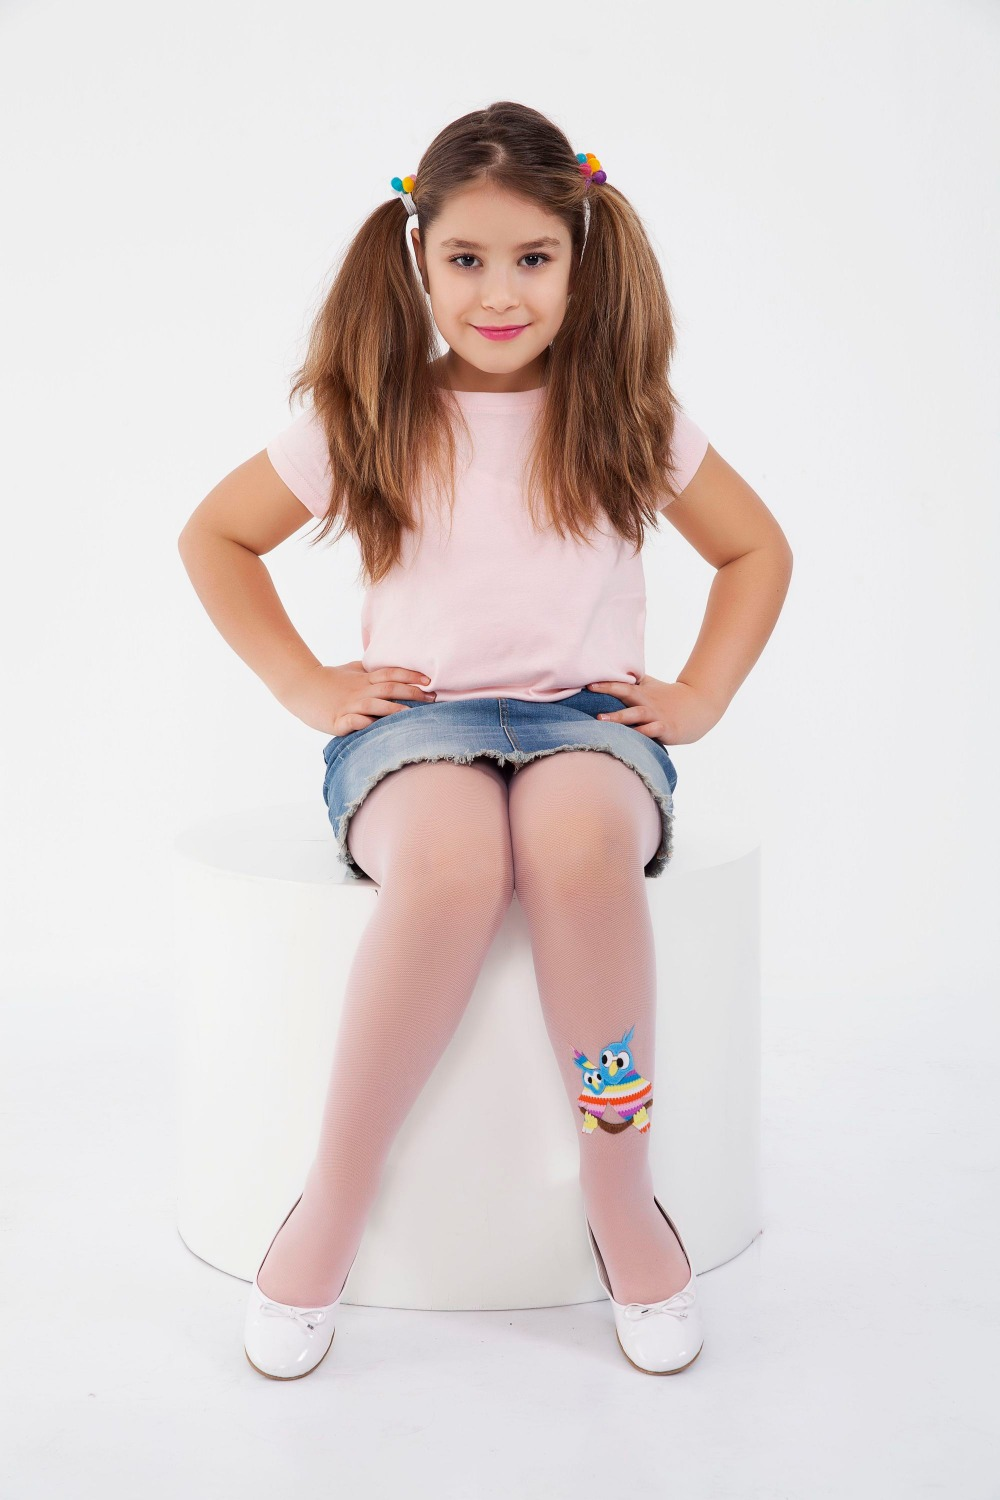 DURU KID'S FASHION TIGHTS , LEGGINGS AND SOCKS